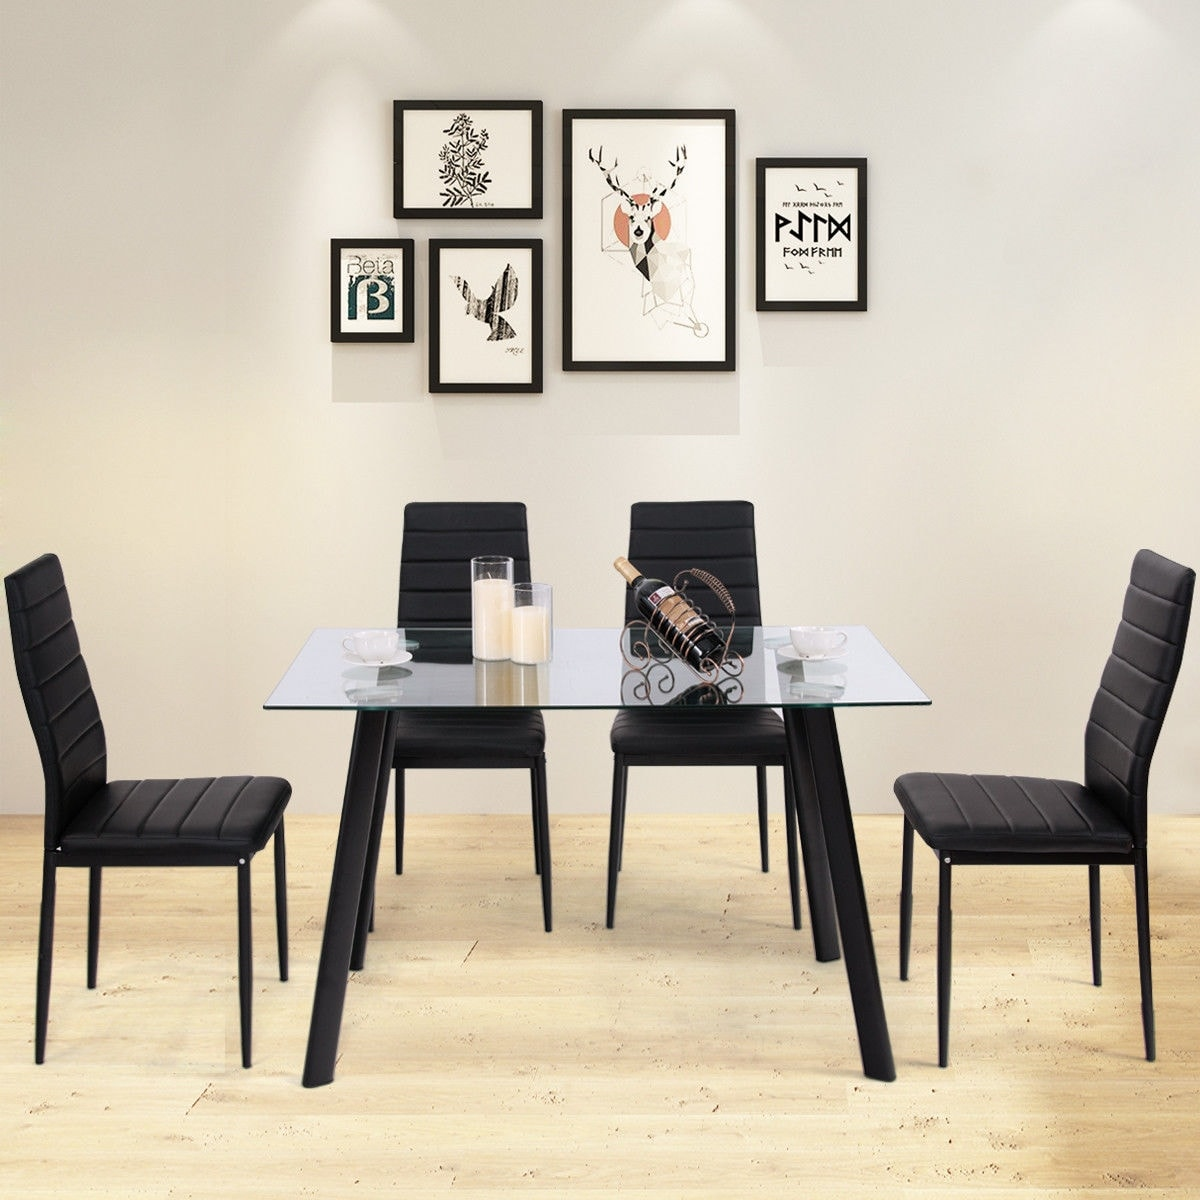 Dining Room Chairs Set Of 4 Costway Modern Glass Dining Table Set Tempered Glass Top Pvc Leather Chair W 4 Chairs Black